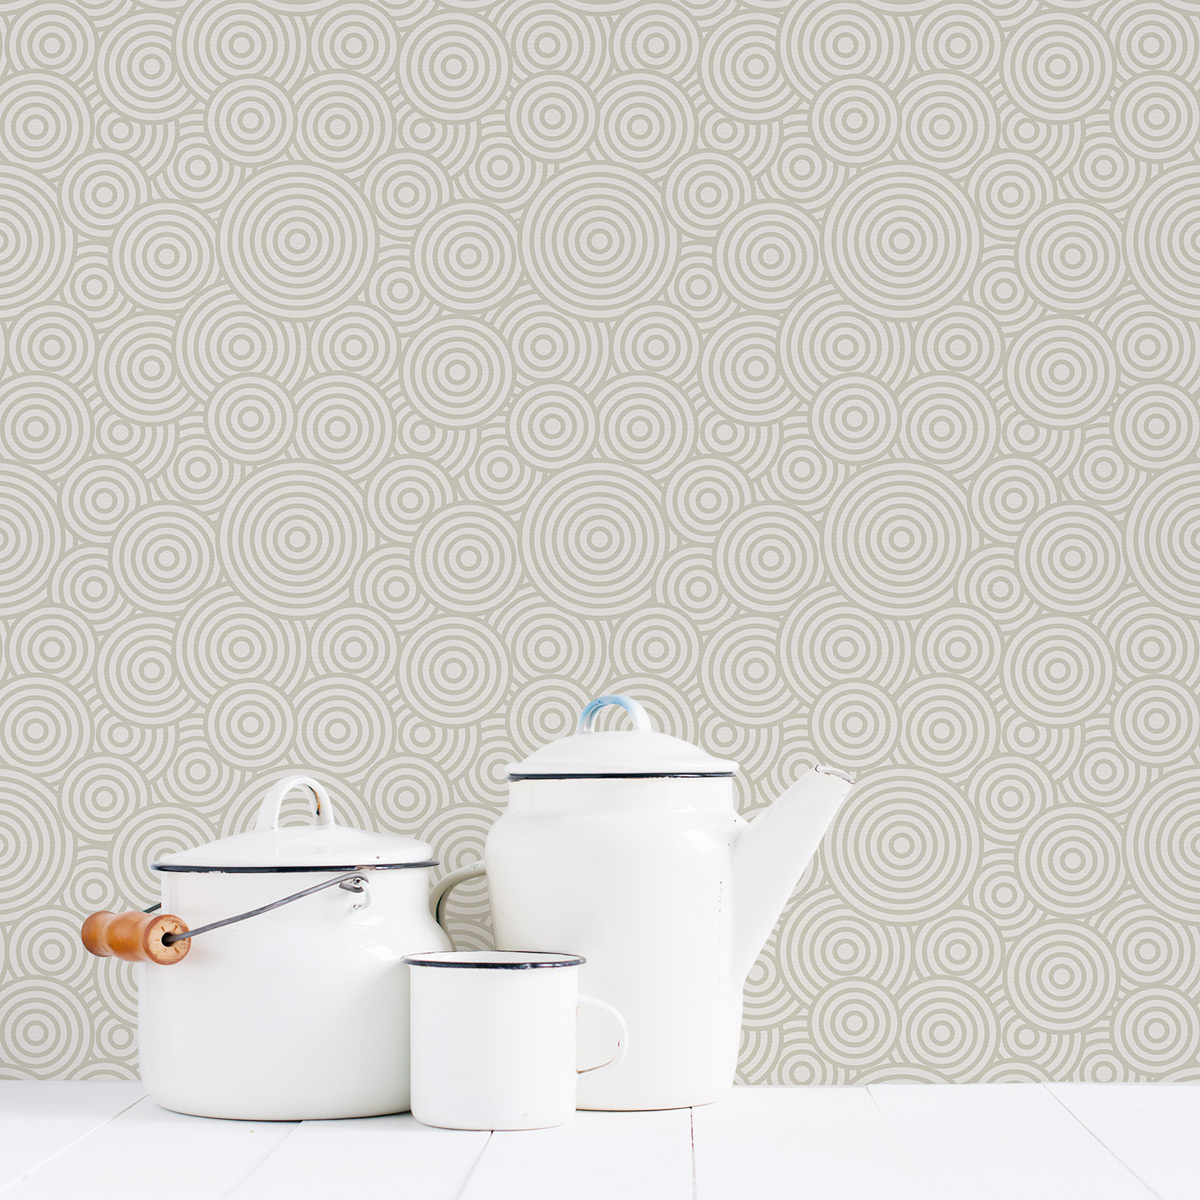 Swirl Removable Wallpaper Tile 1200x1200